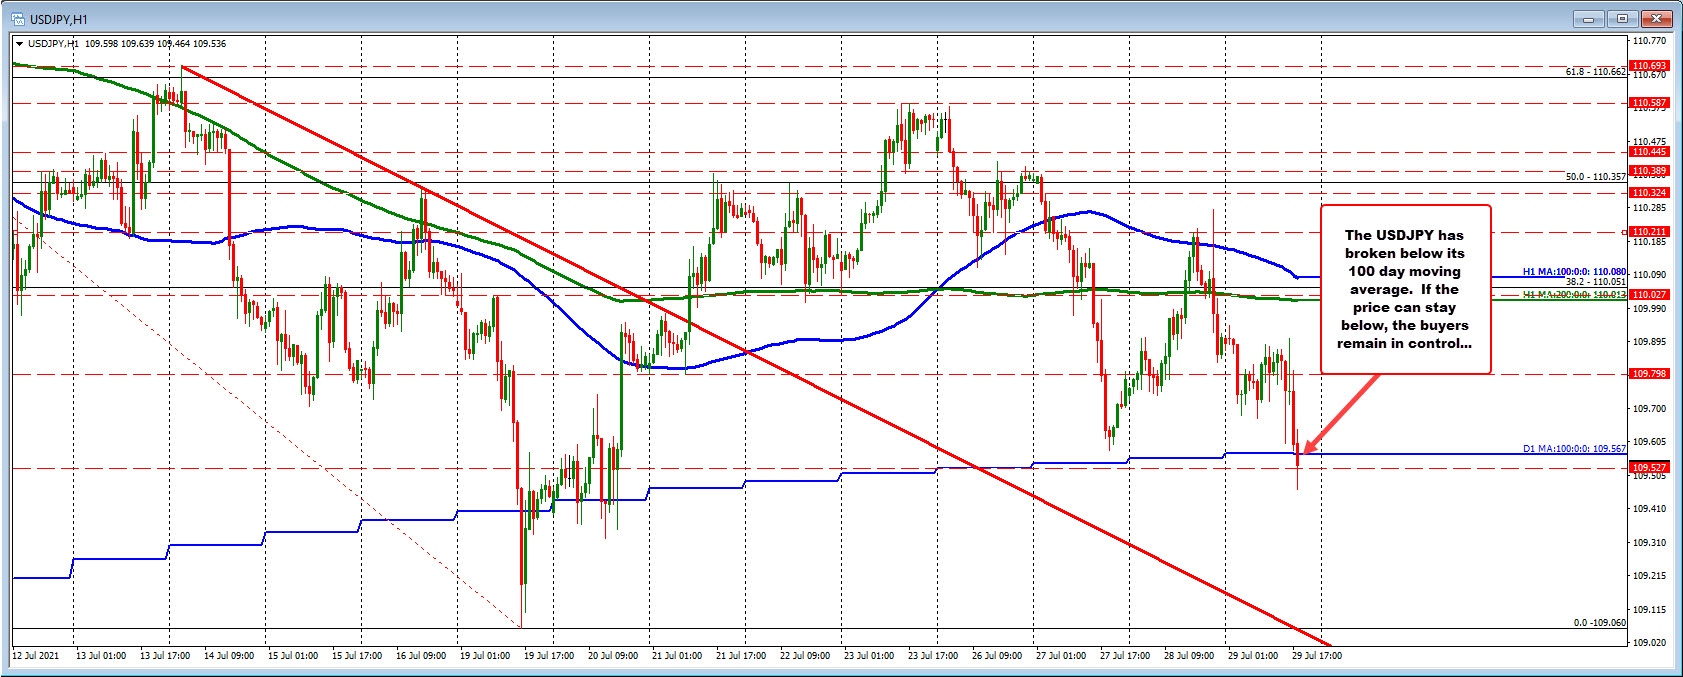 USDJPY is below its 100 day moving average